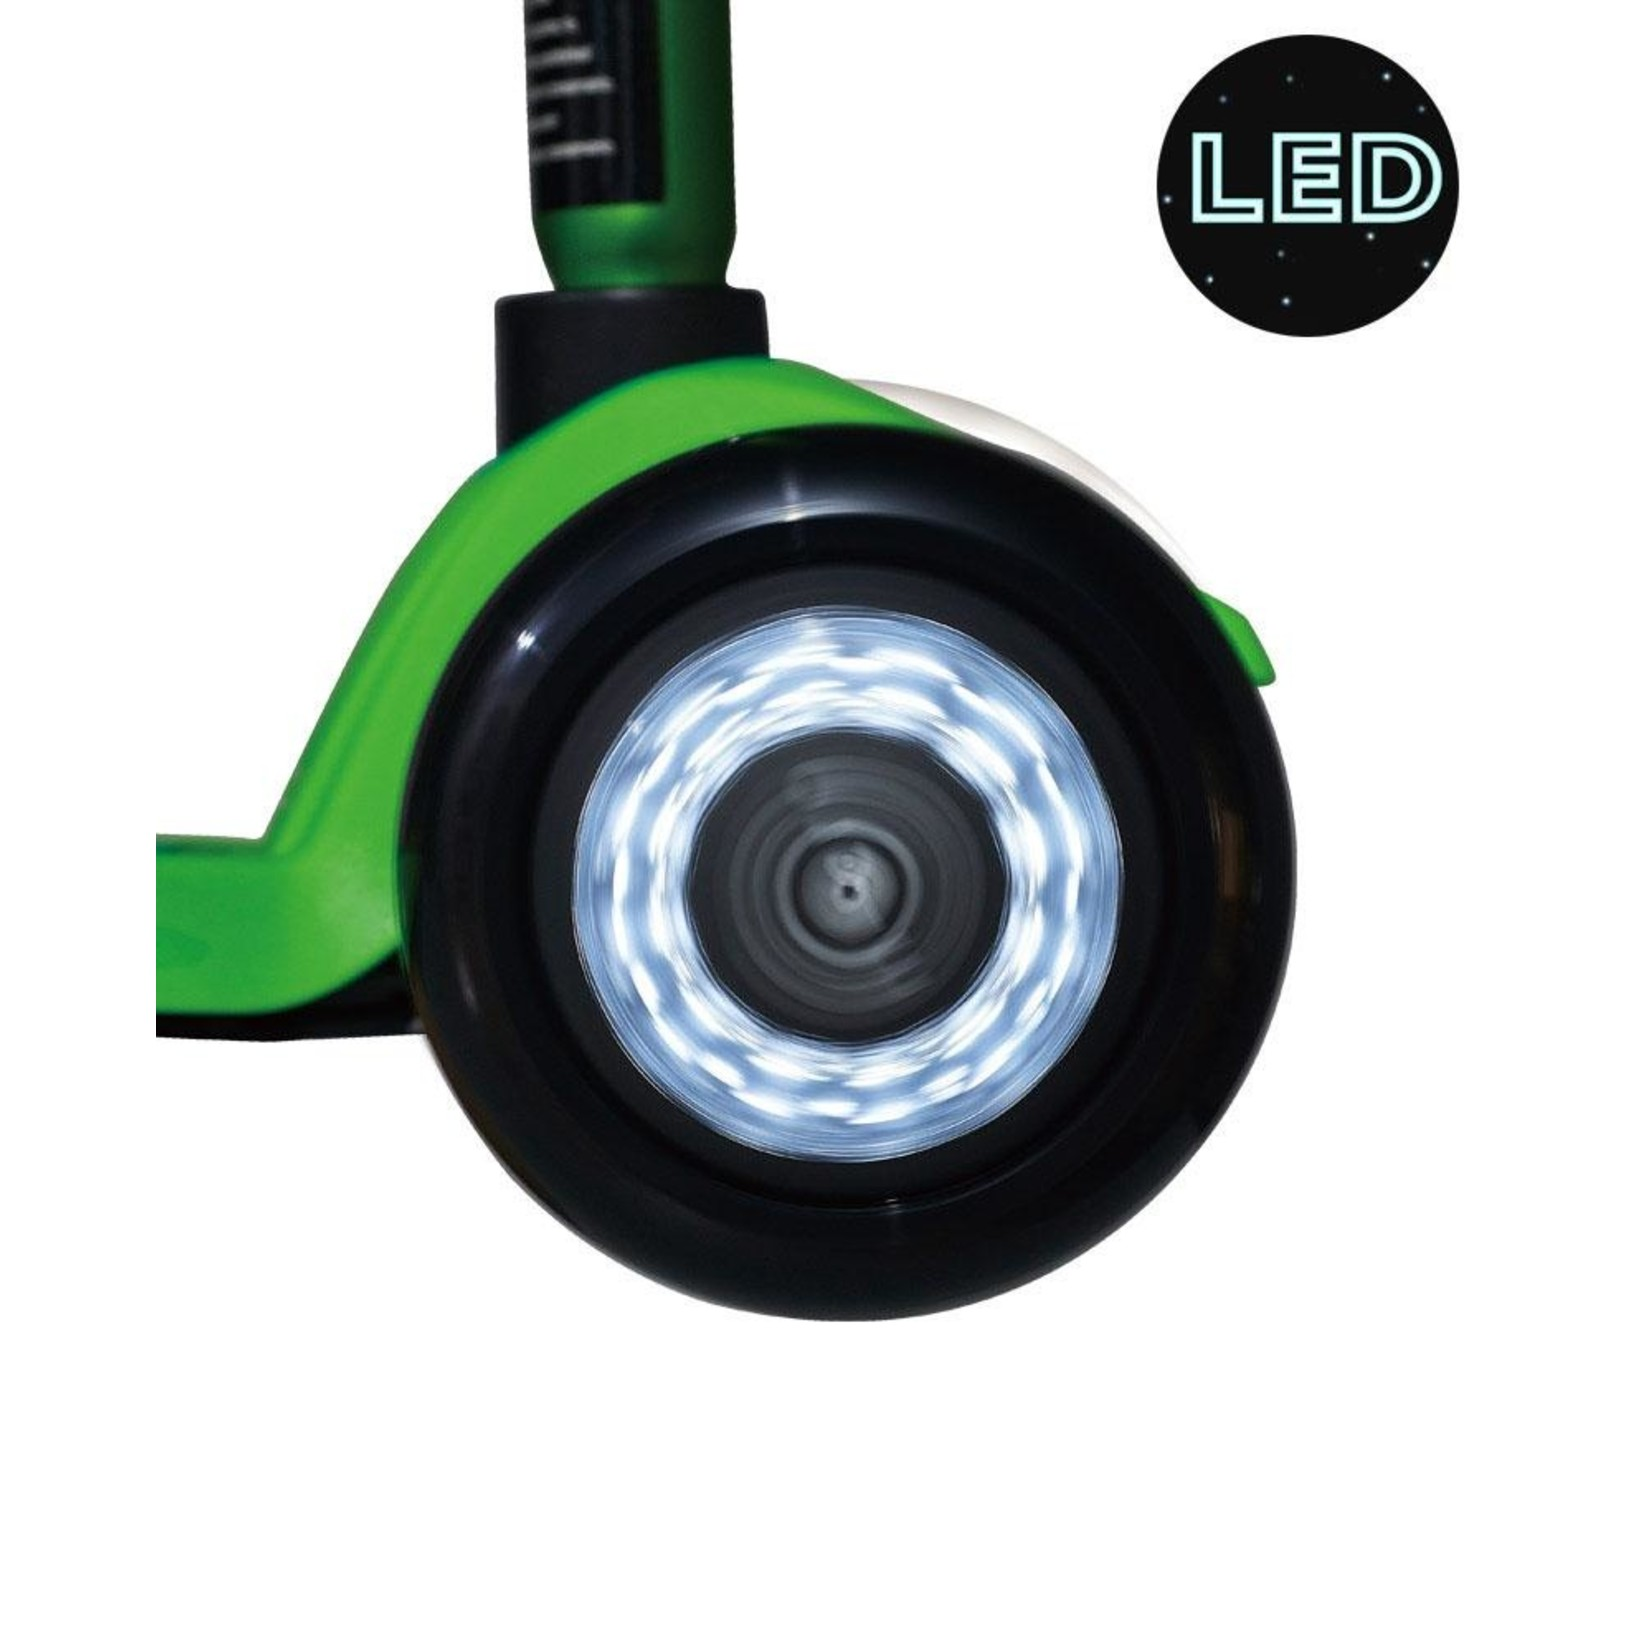 Micro Scooters Micro LED Whizzer